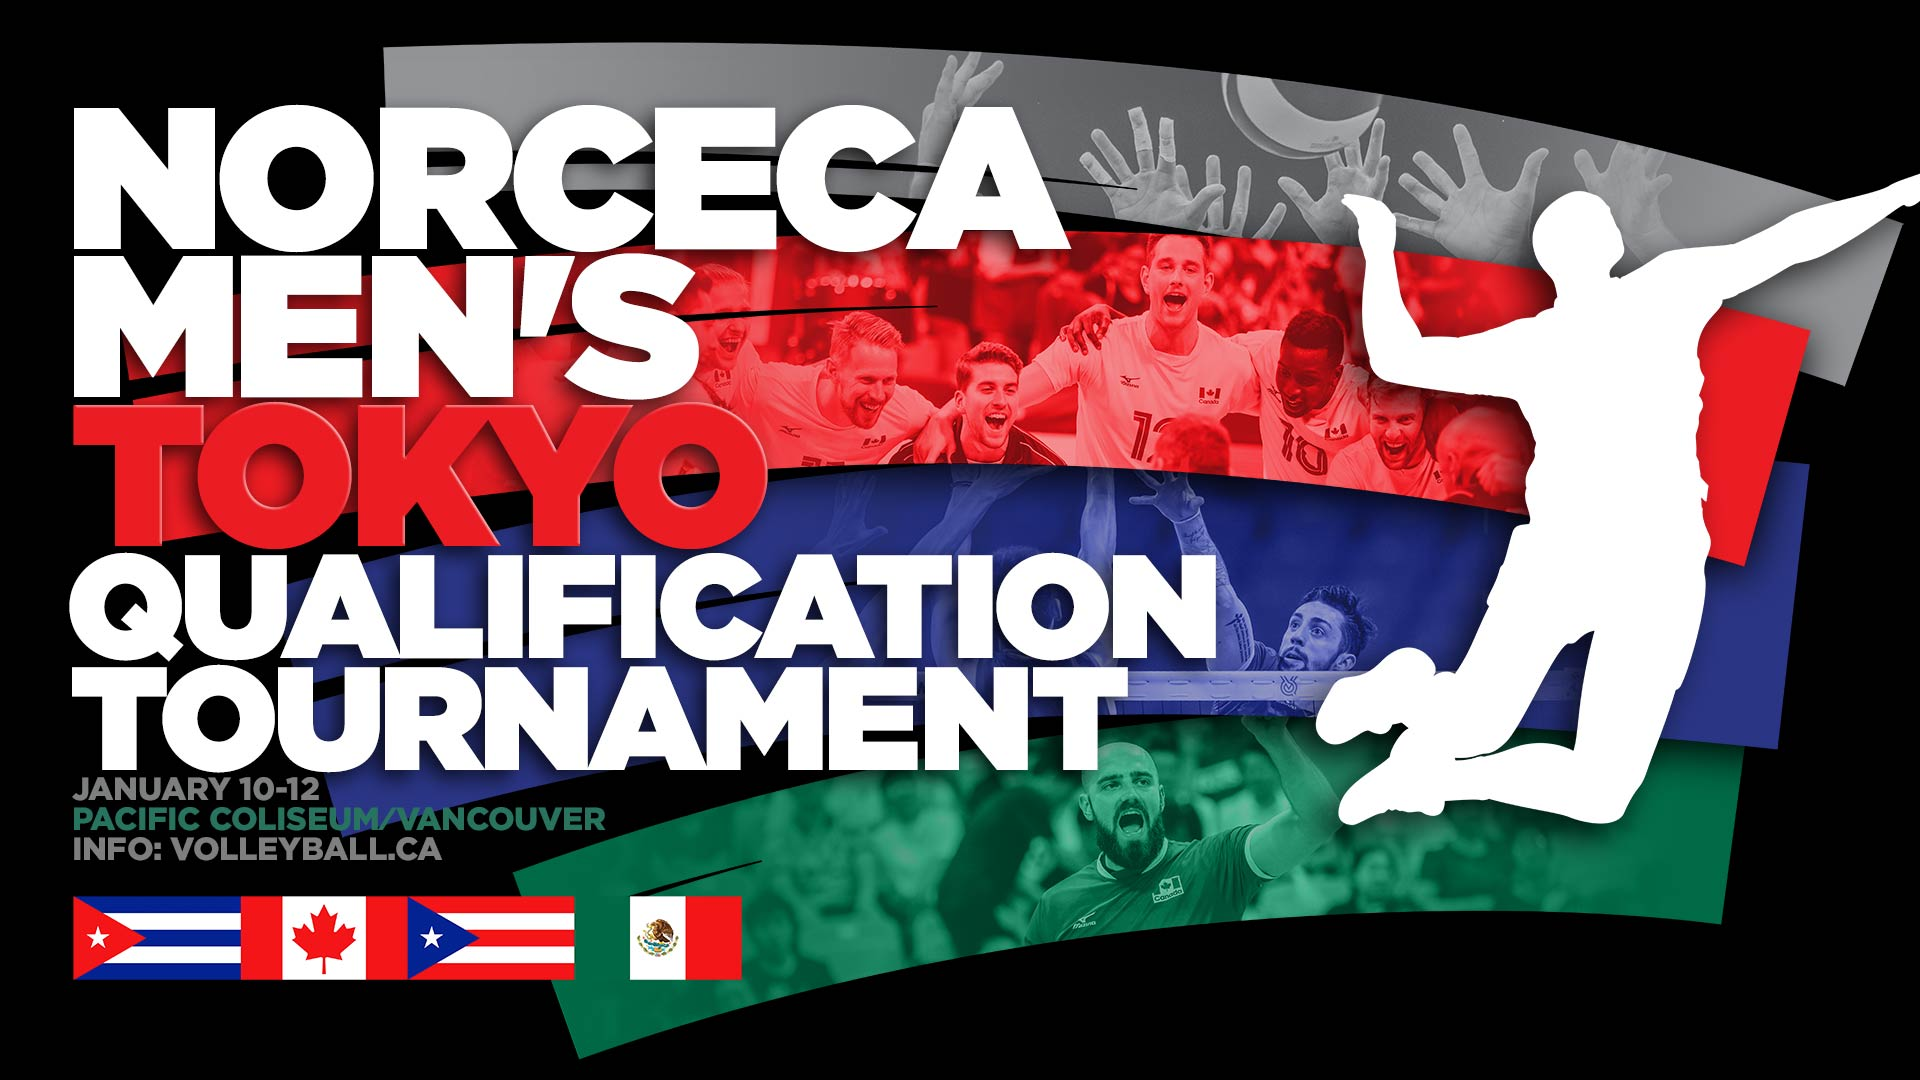 NORCECA Men's Tokyo Volleyball Qualification Tournament